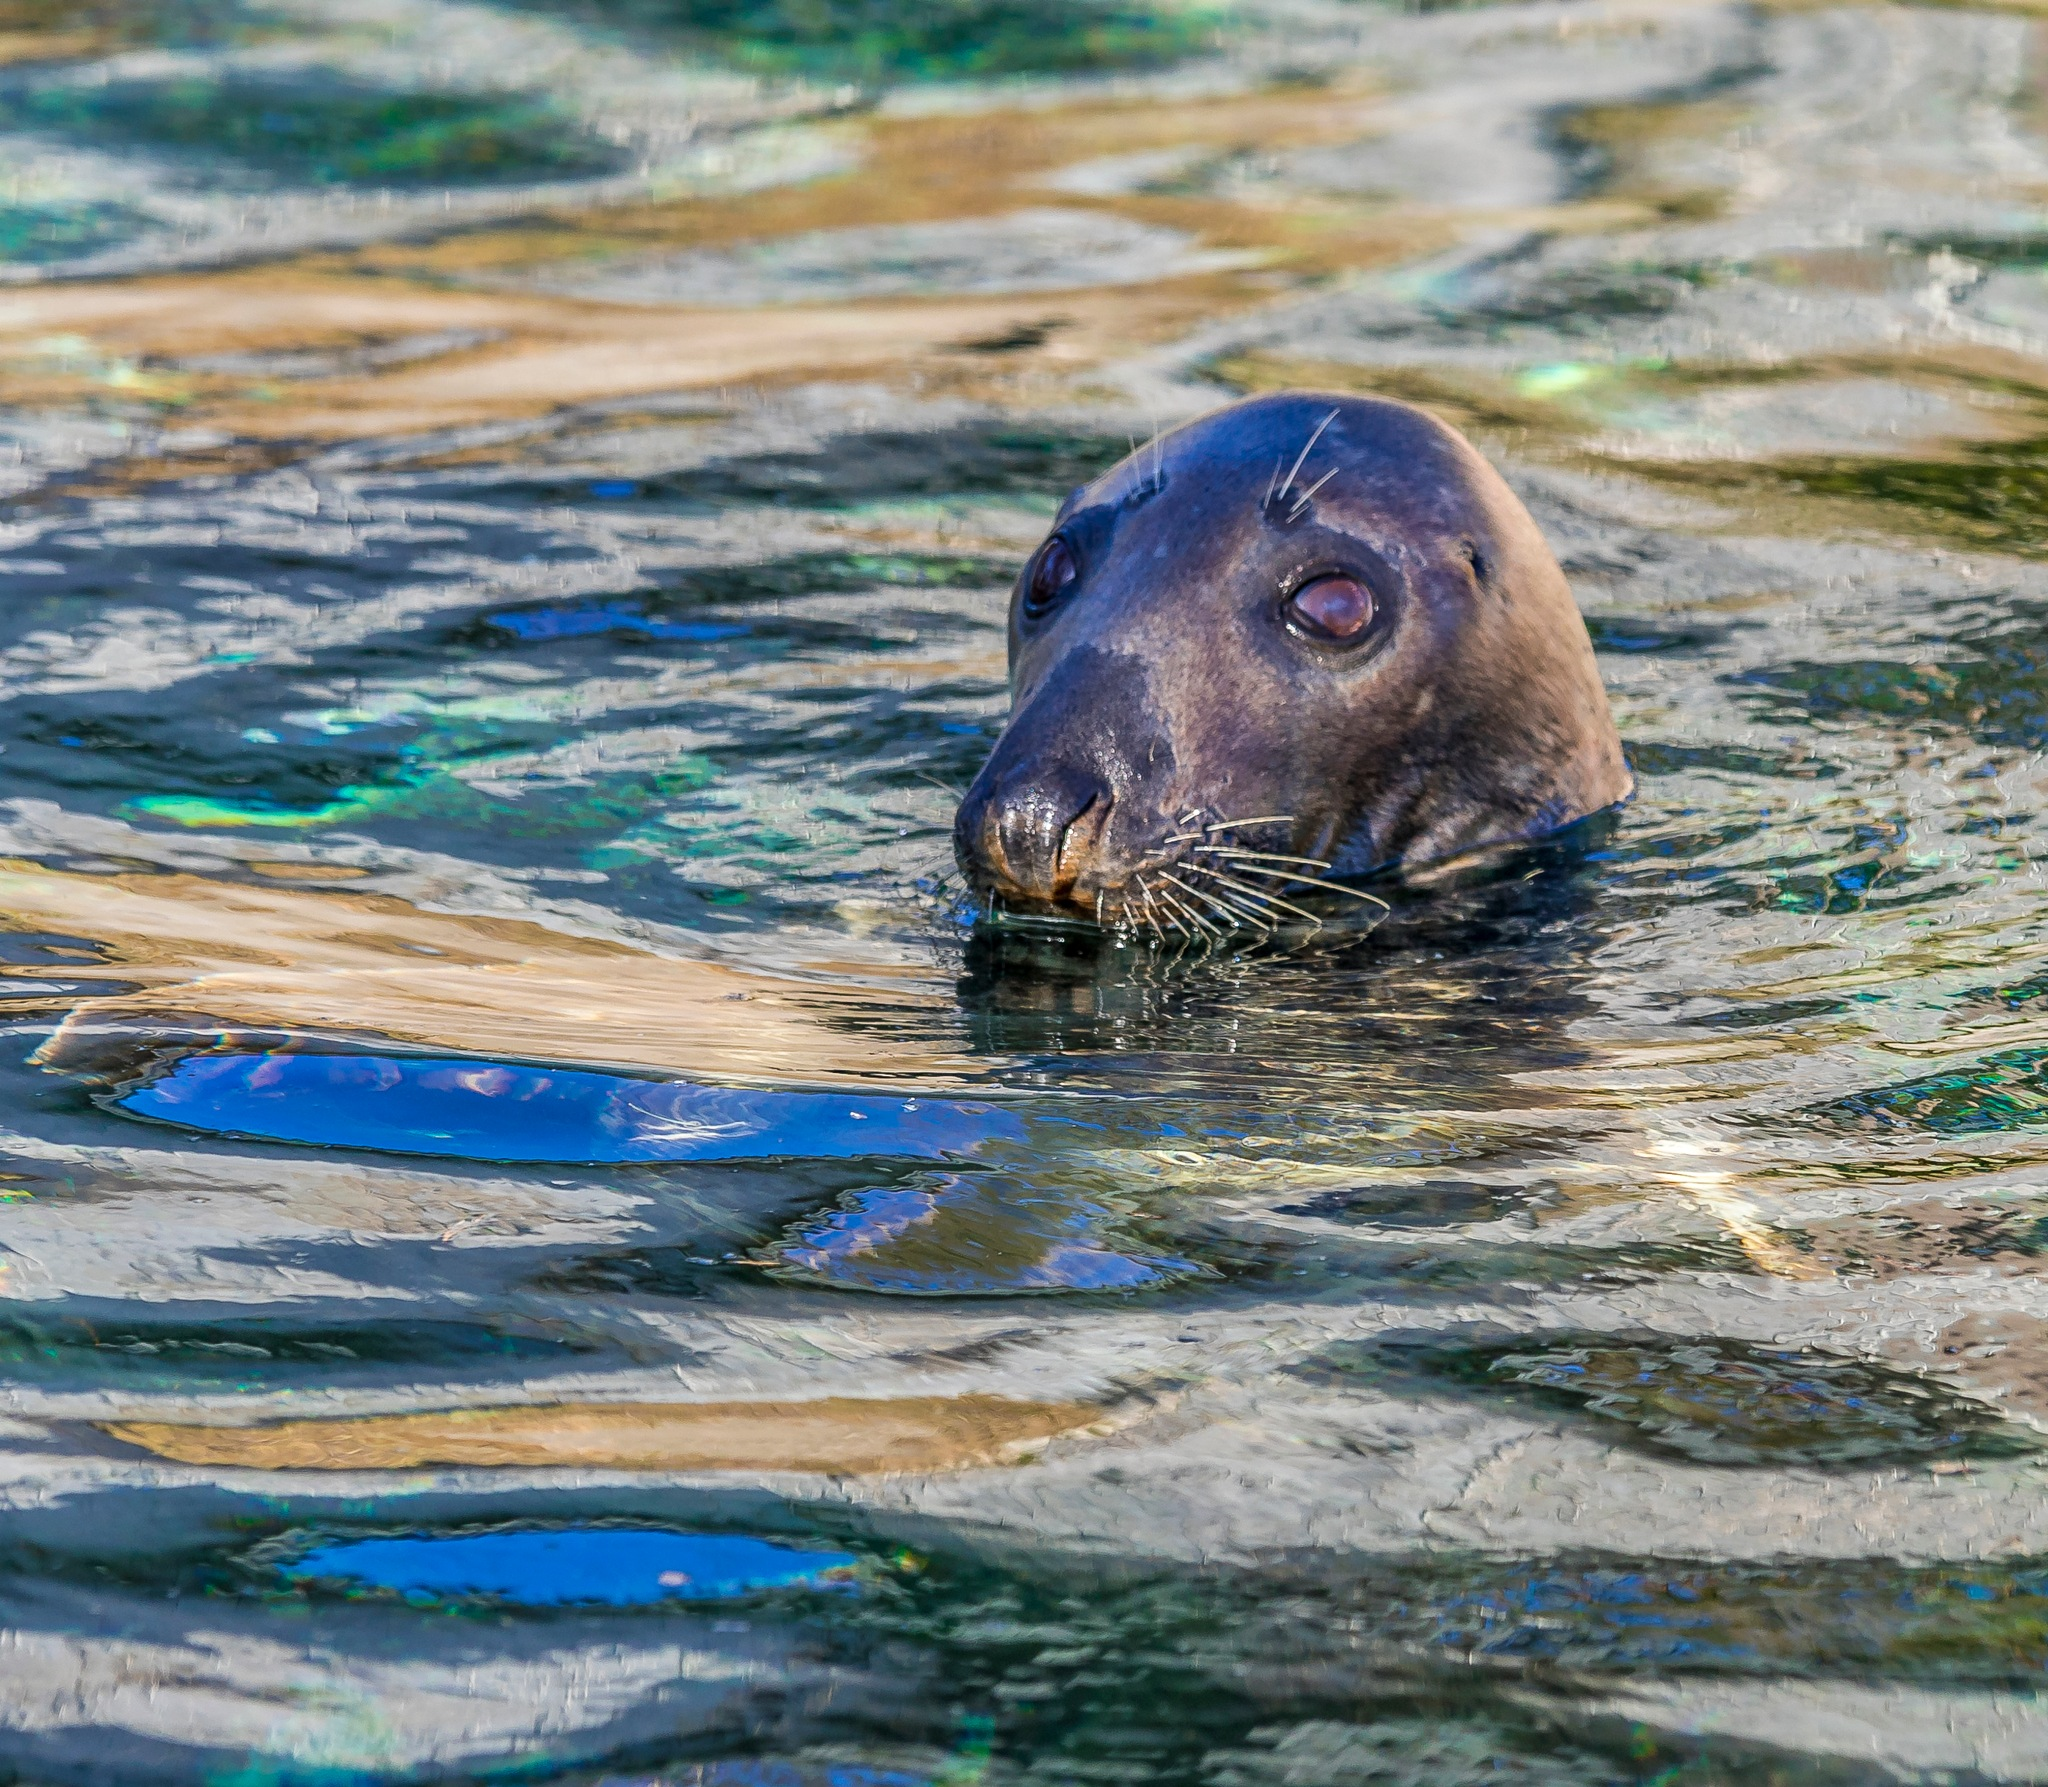 The Happy Seal by Kim Jonsson